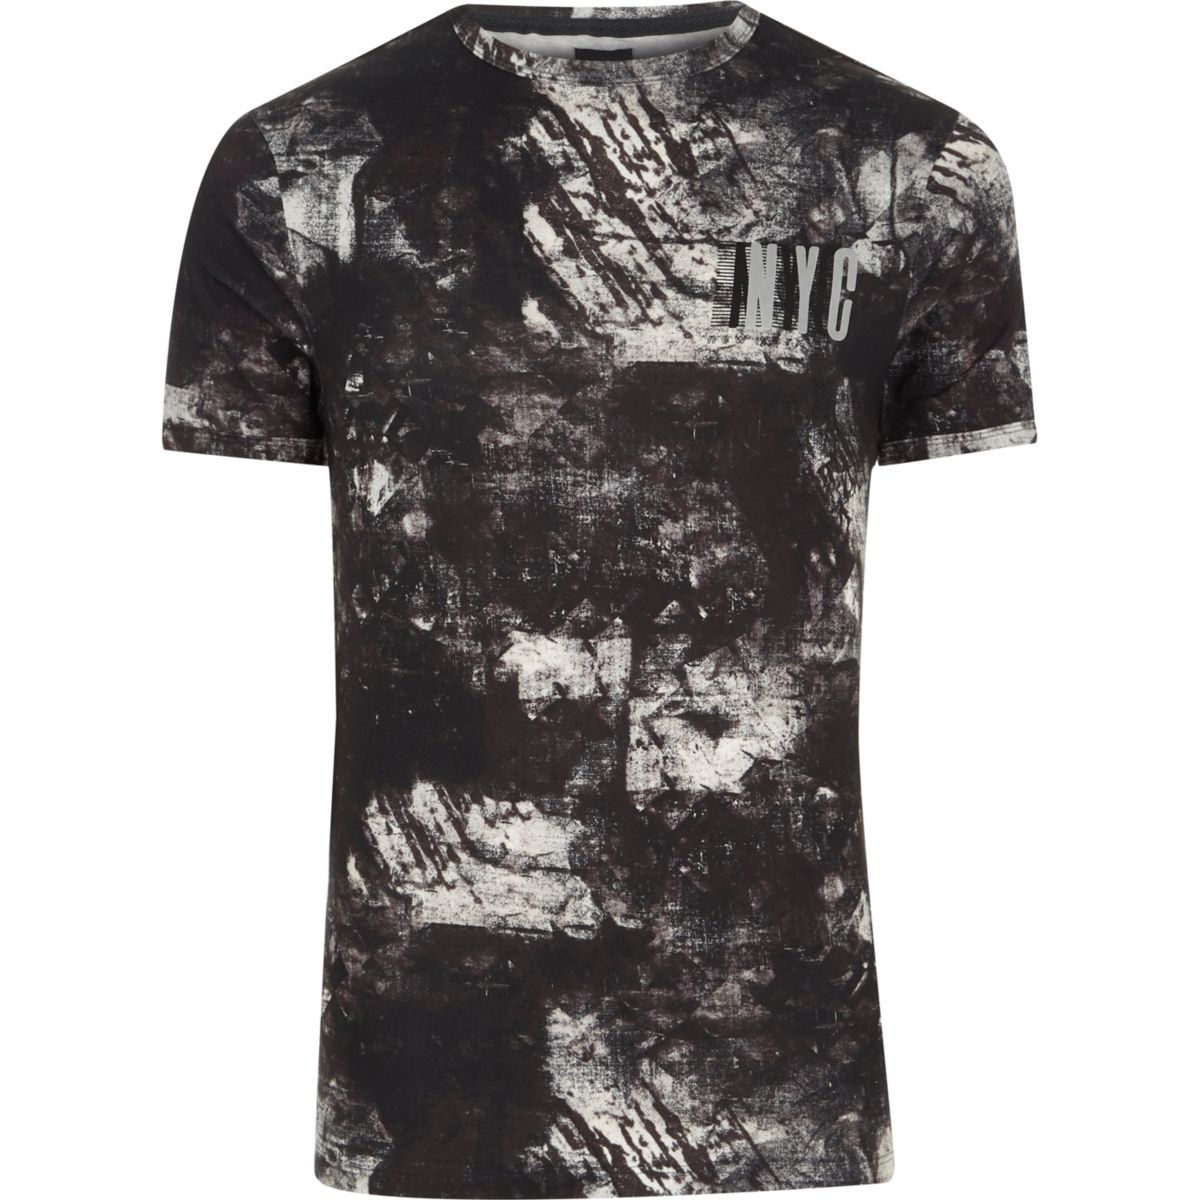 Black mono smudge 'NYC' muscle fit T-shirt